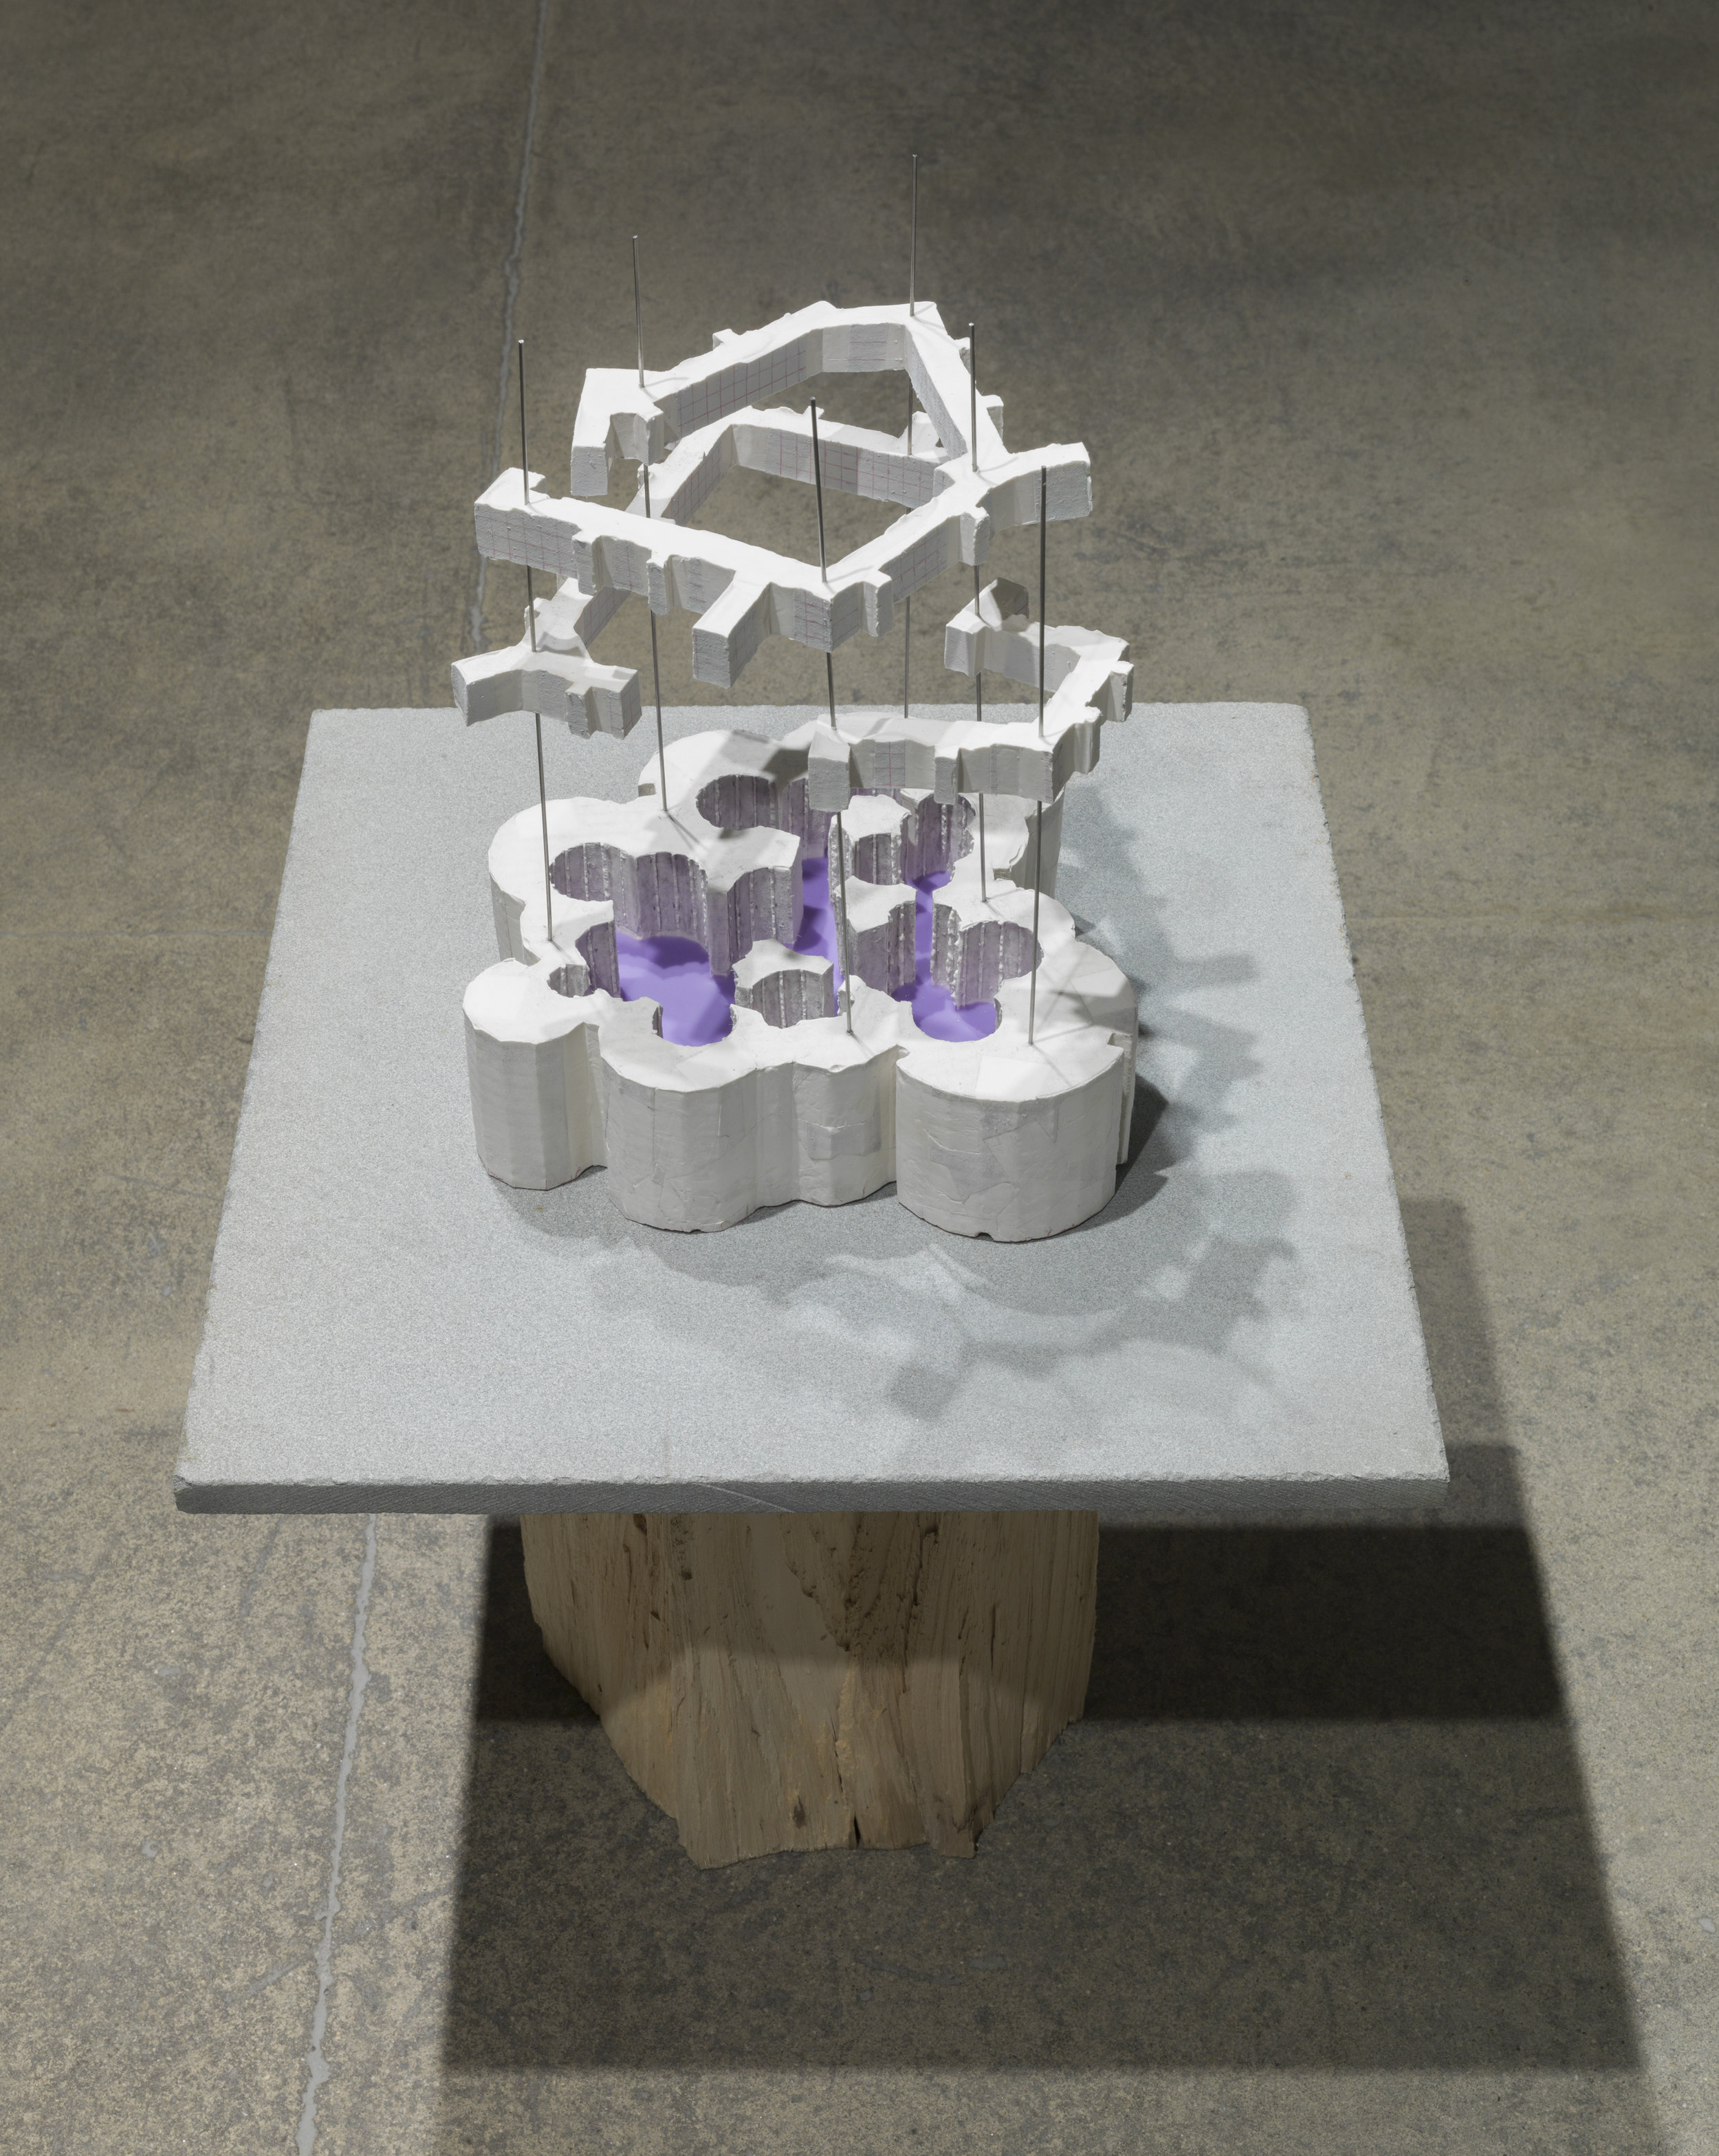 purple pool , 2017-18 hydrostone, stainless steel wire, beeswax 13 x 10.5 x 10 inches